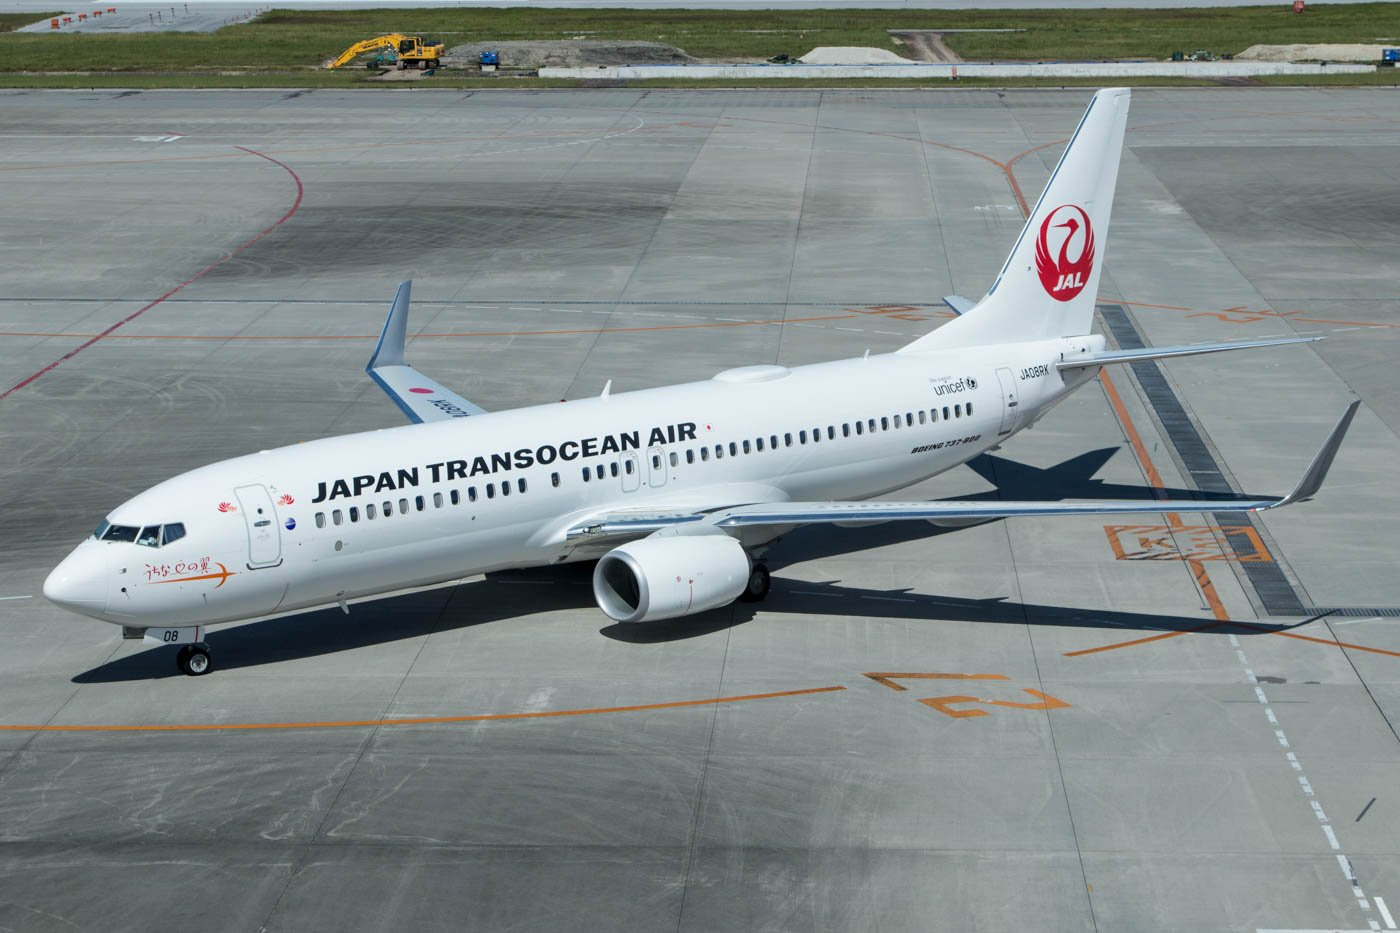 JTA Japan TransOcean Air 737-800 at Naha Airport